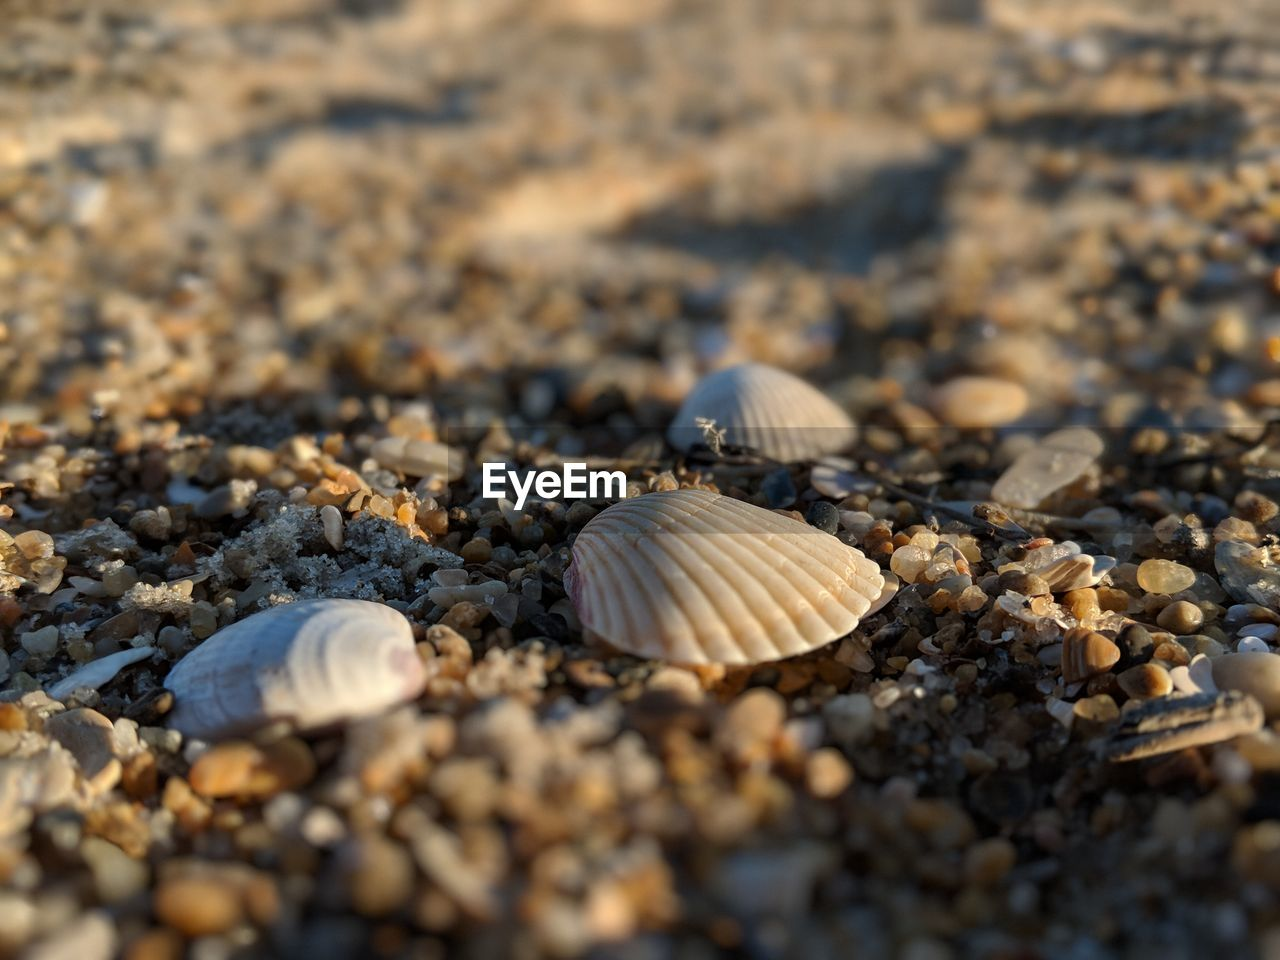 shell, animal shell, land, seashell, animal wildlife, beach, close-up, selective focus, no people, day, solid, rock, nature, animal, beauty in nature, sand, stone - object, pebble, outdoors, textured, surface level, marine